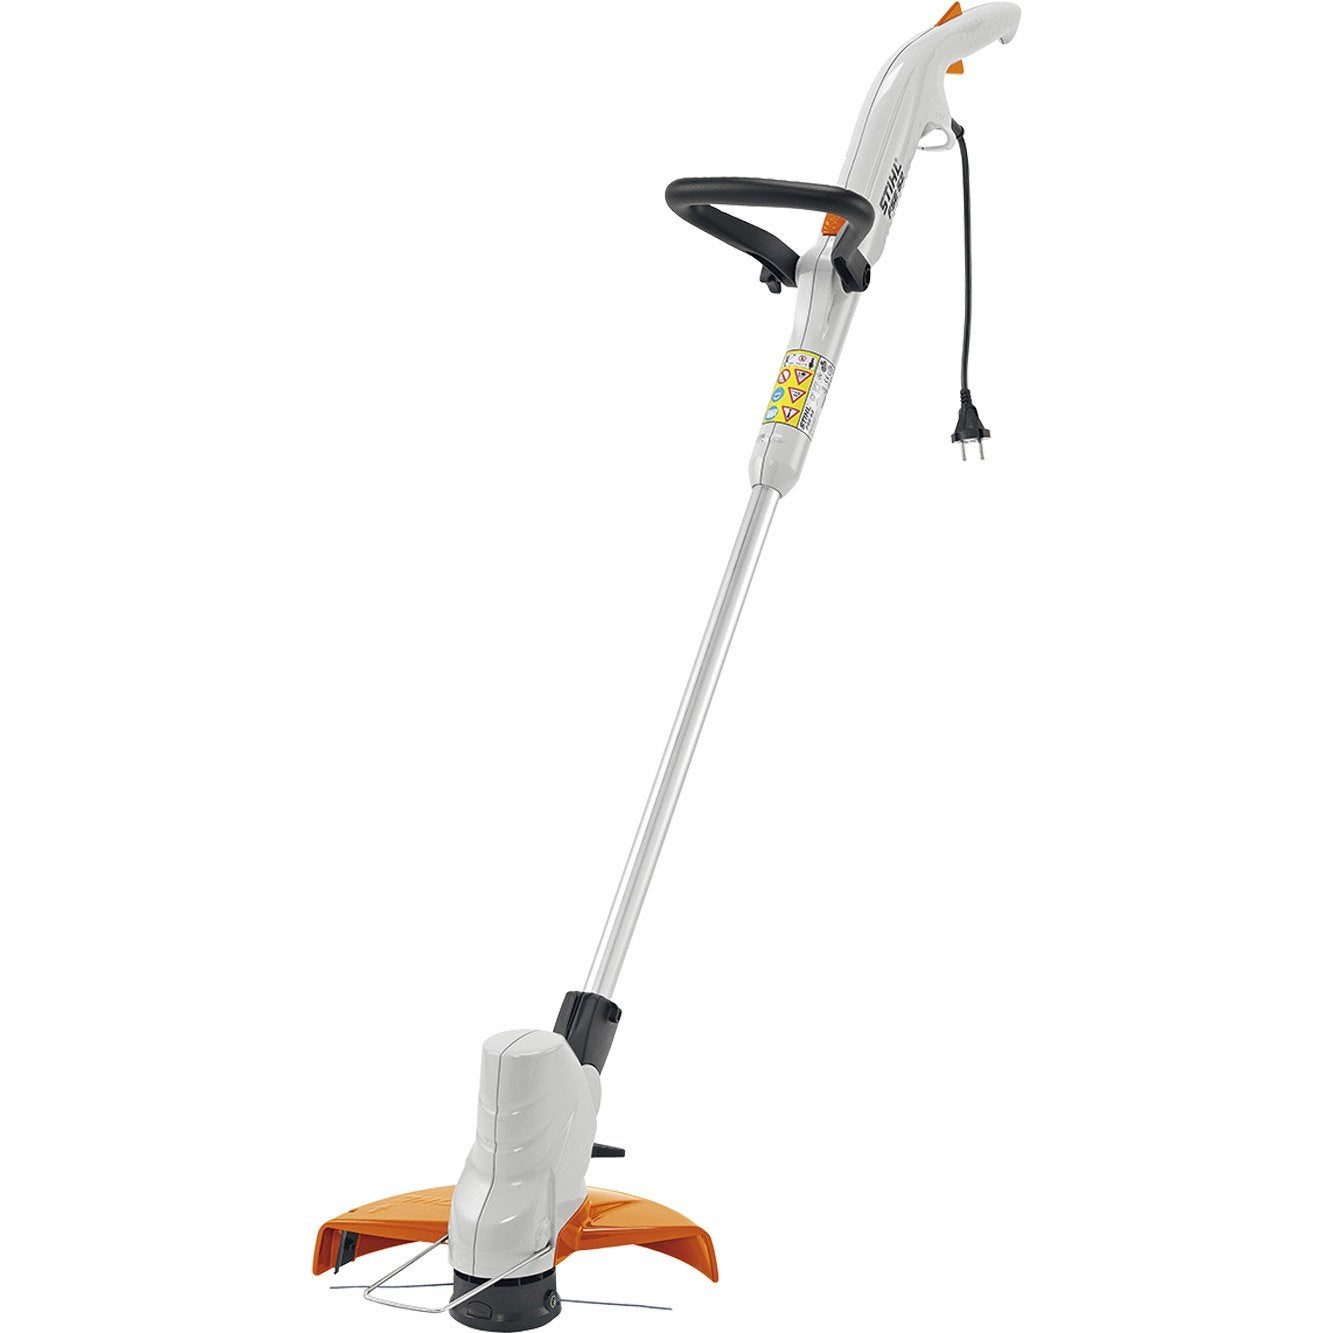 coupe bordures electrique stihl fse 52 500 w leroy merlin. Black Bedroom Furniture Sets. Home Design Ideas